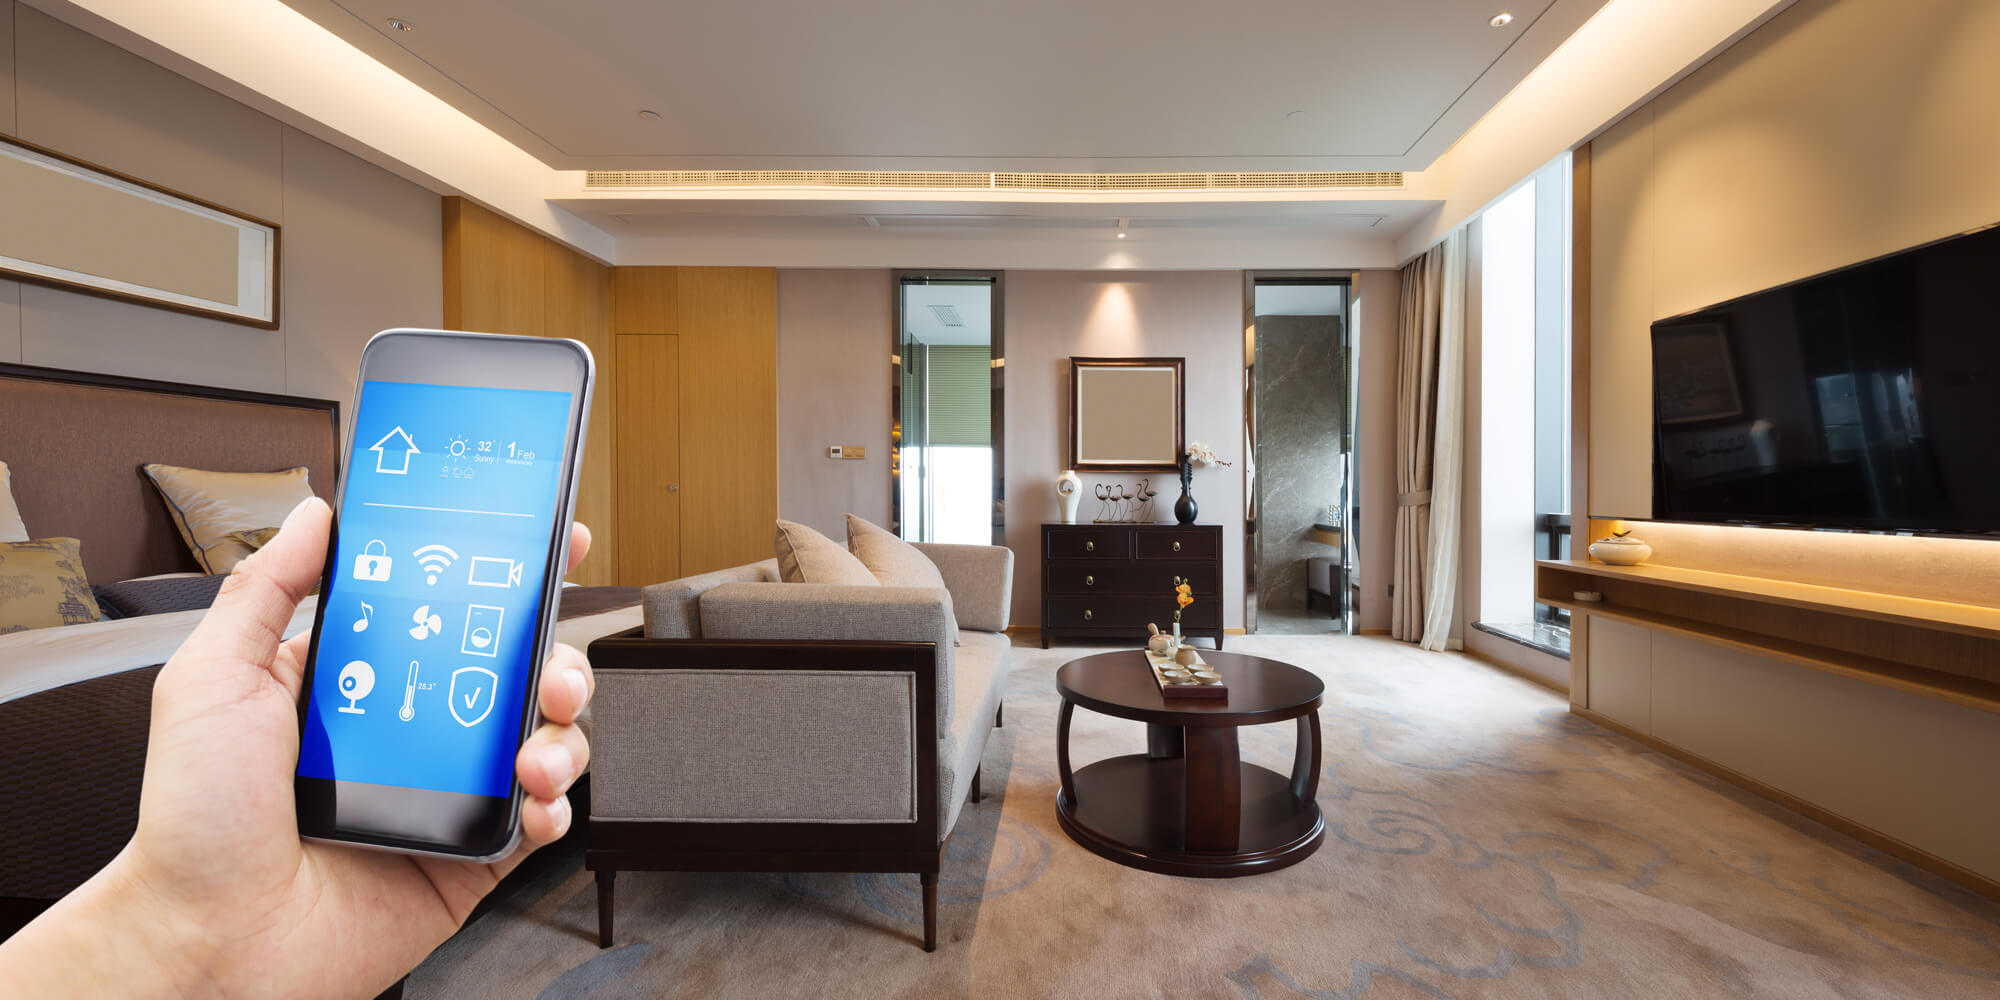 The Smart Home for a Smart Life